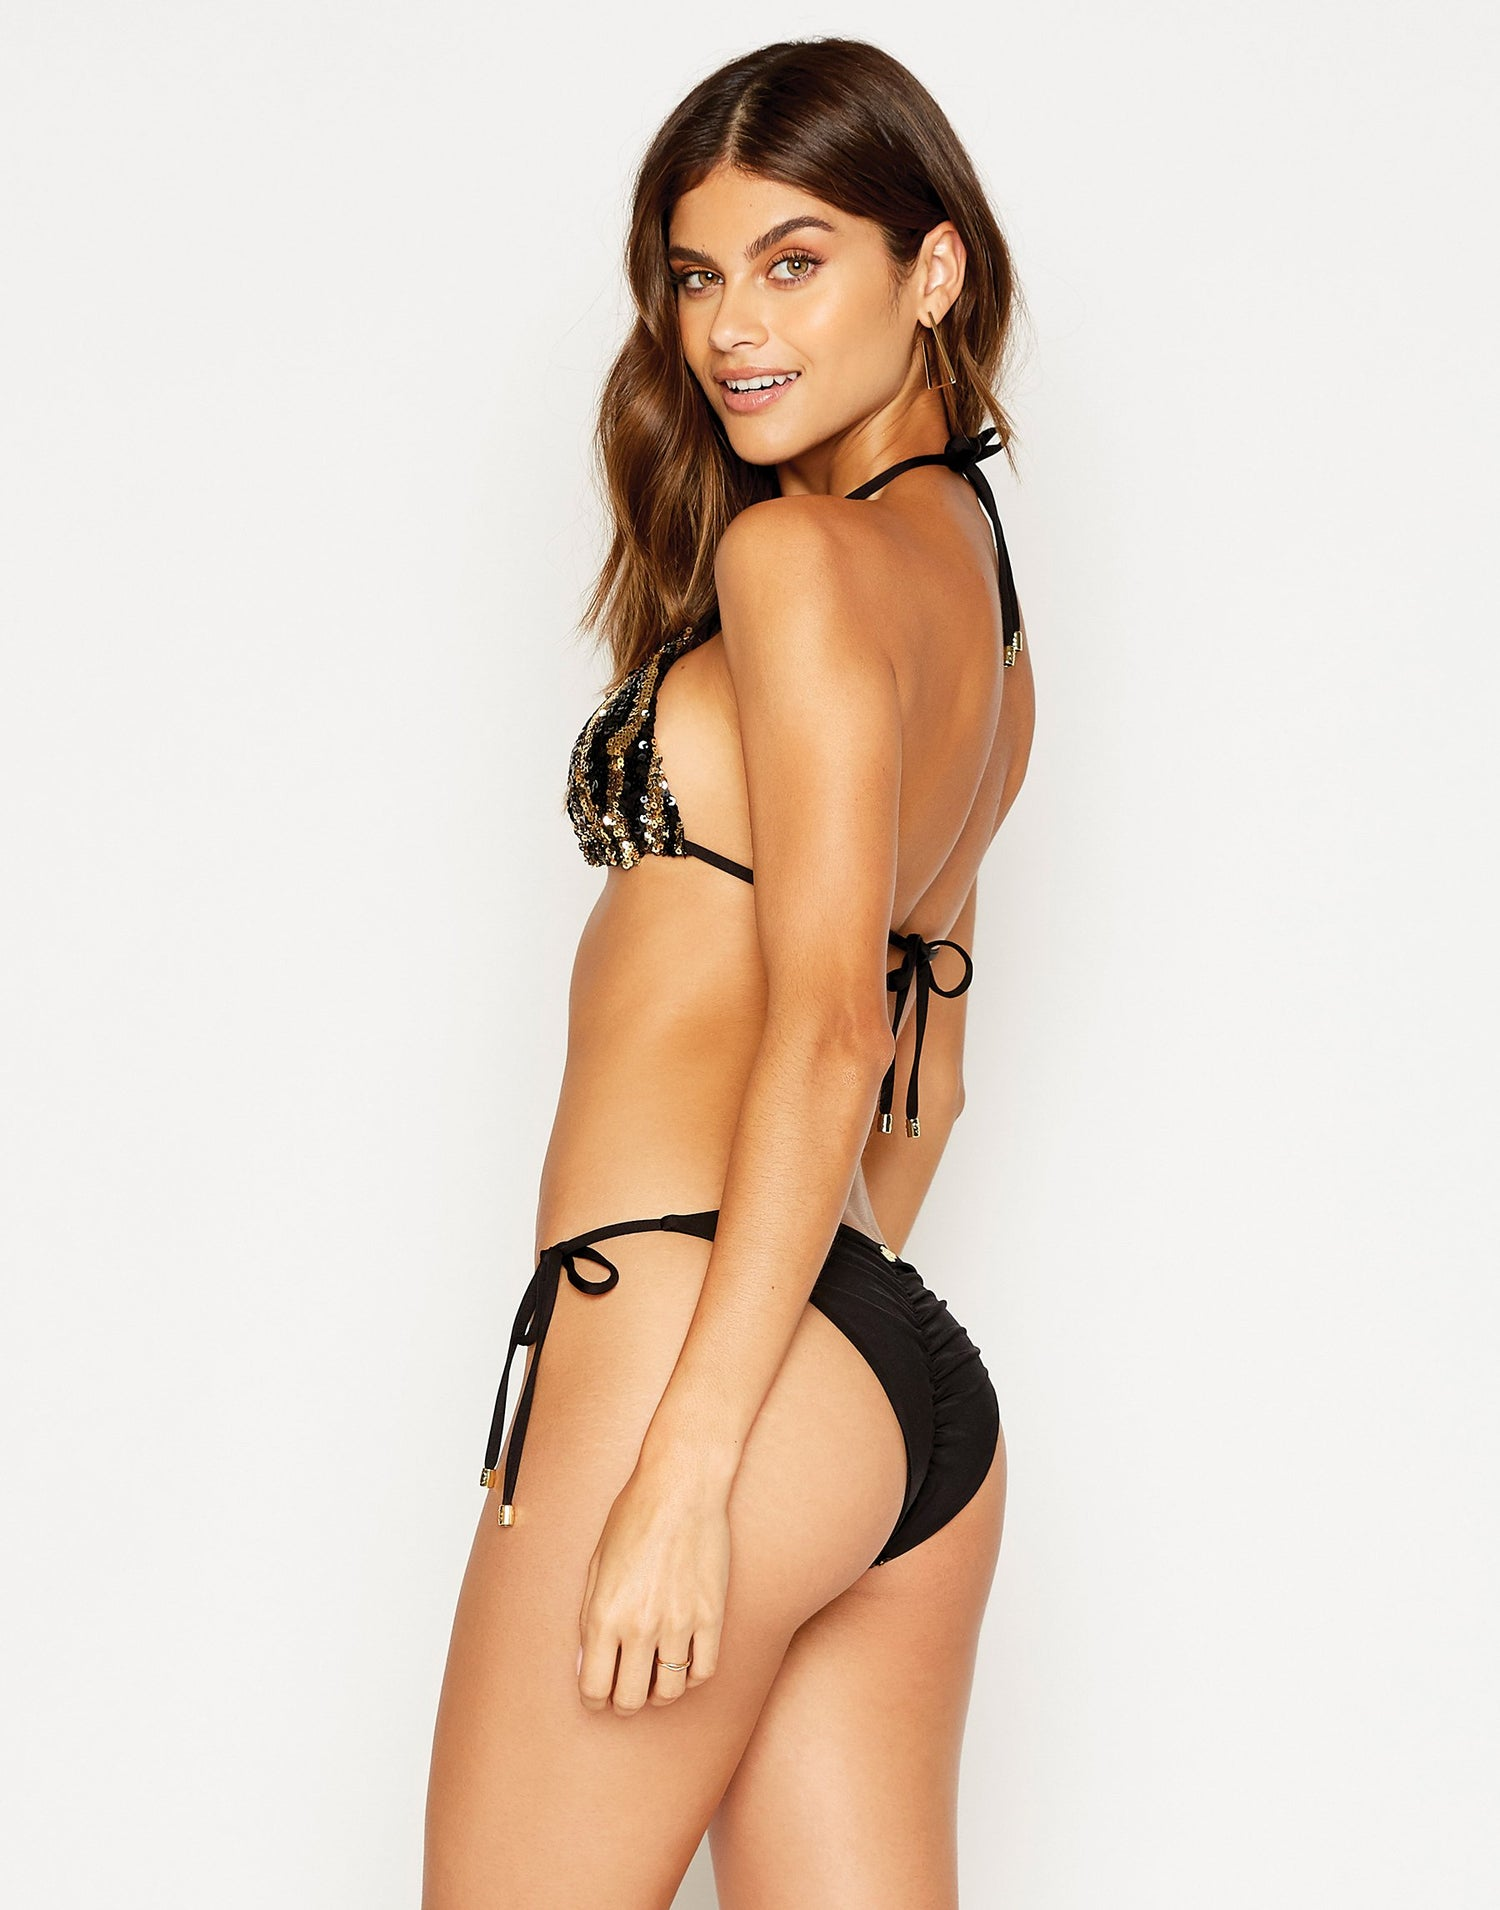 Shiloh Tie Side Bikini Bottom in Black with Gold and Black Sequins - side view